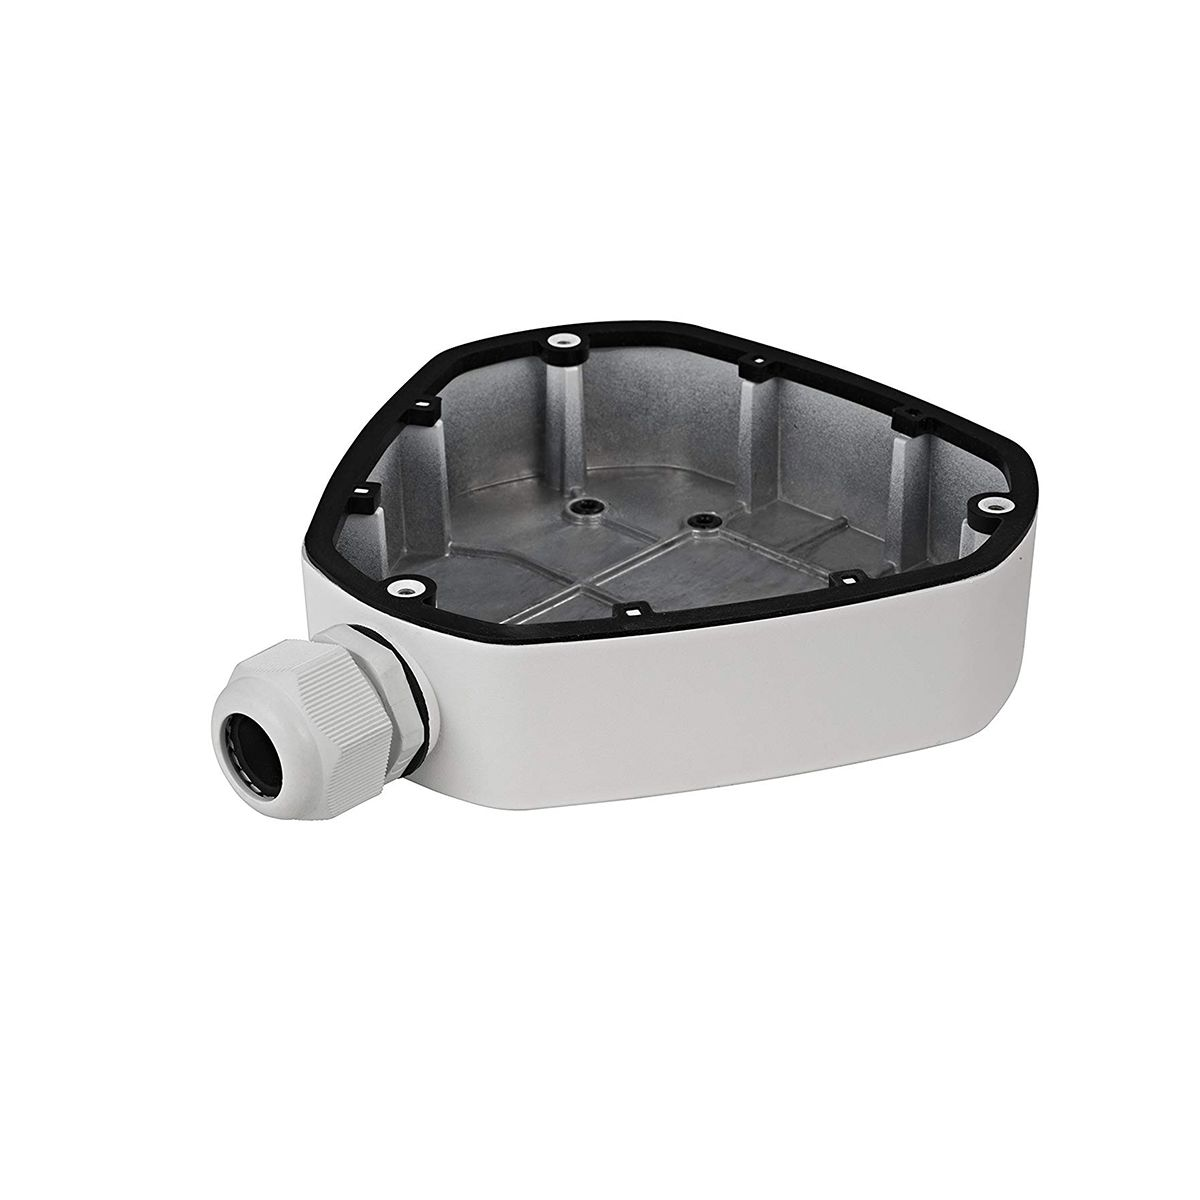 Soporte de Superficie Inclinada Hikvision DS-1281ZJ-DM25